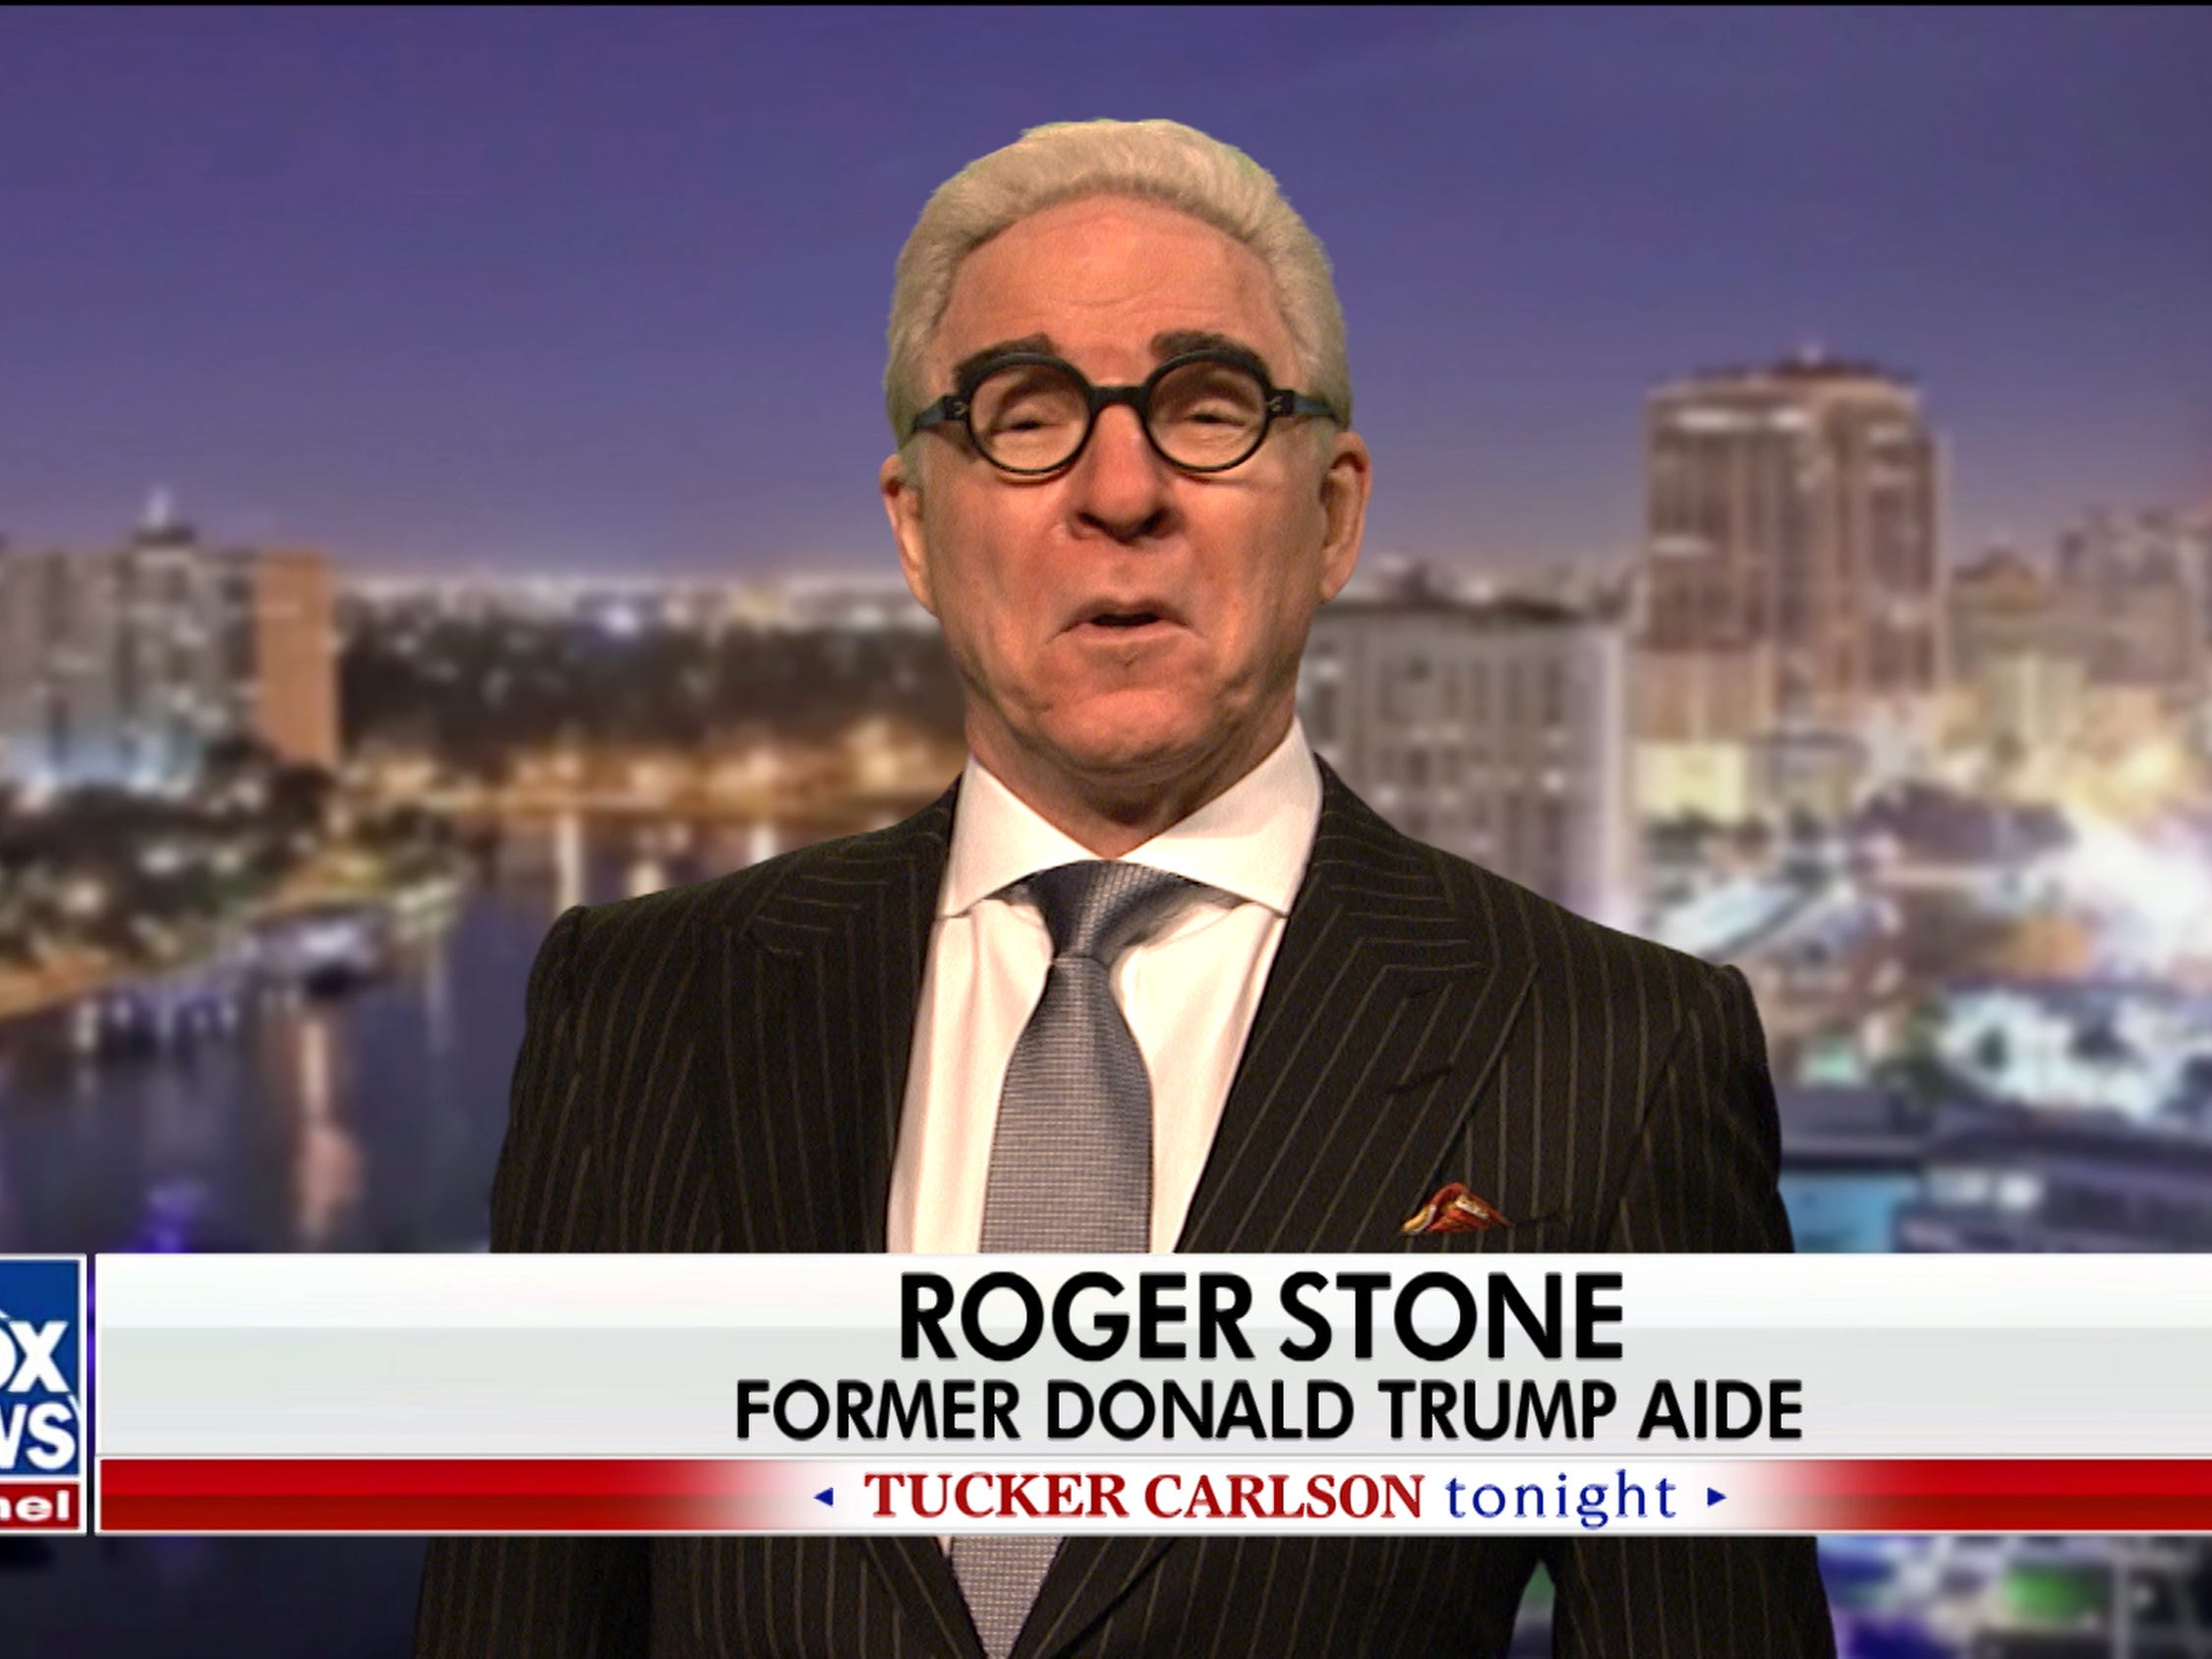 "Steve Martin made a surprise appearance as Trump aide Roger Stone to kick off the Jan. 26 episode ""Saturday Night Live."" The appearance, a day after Stone was arrested in Florida and charged with lying to investigators, obstruction and witness tampering in the Russia investigation, was part of a parody of Tucker Carlson's Fox News show."